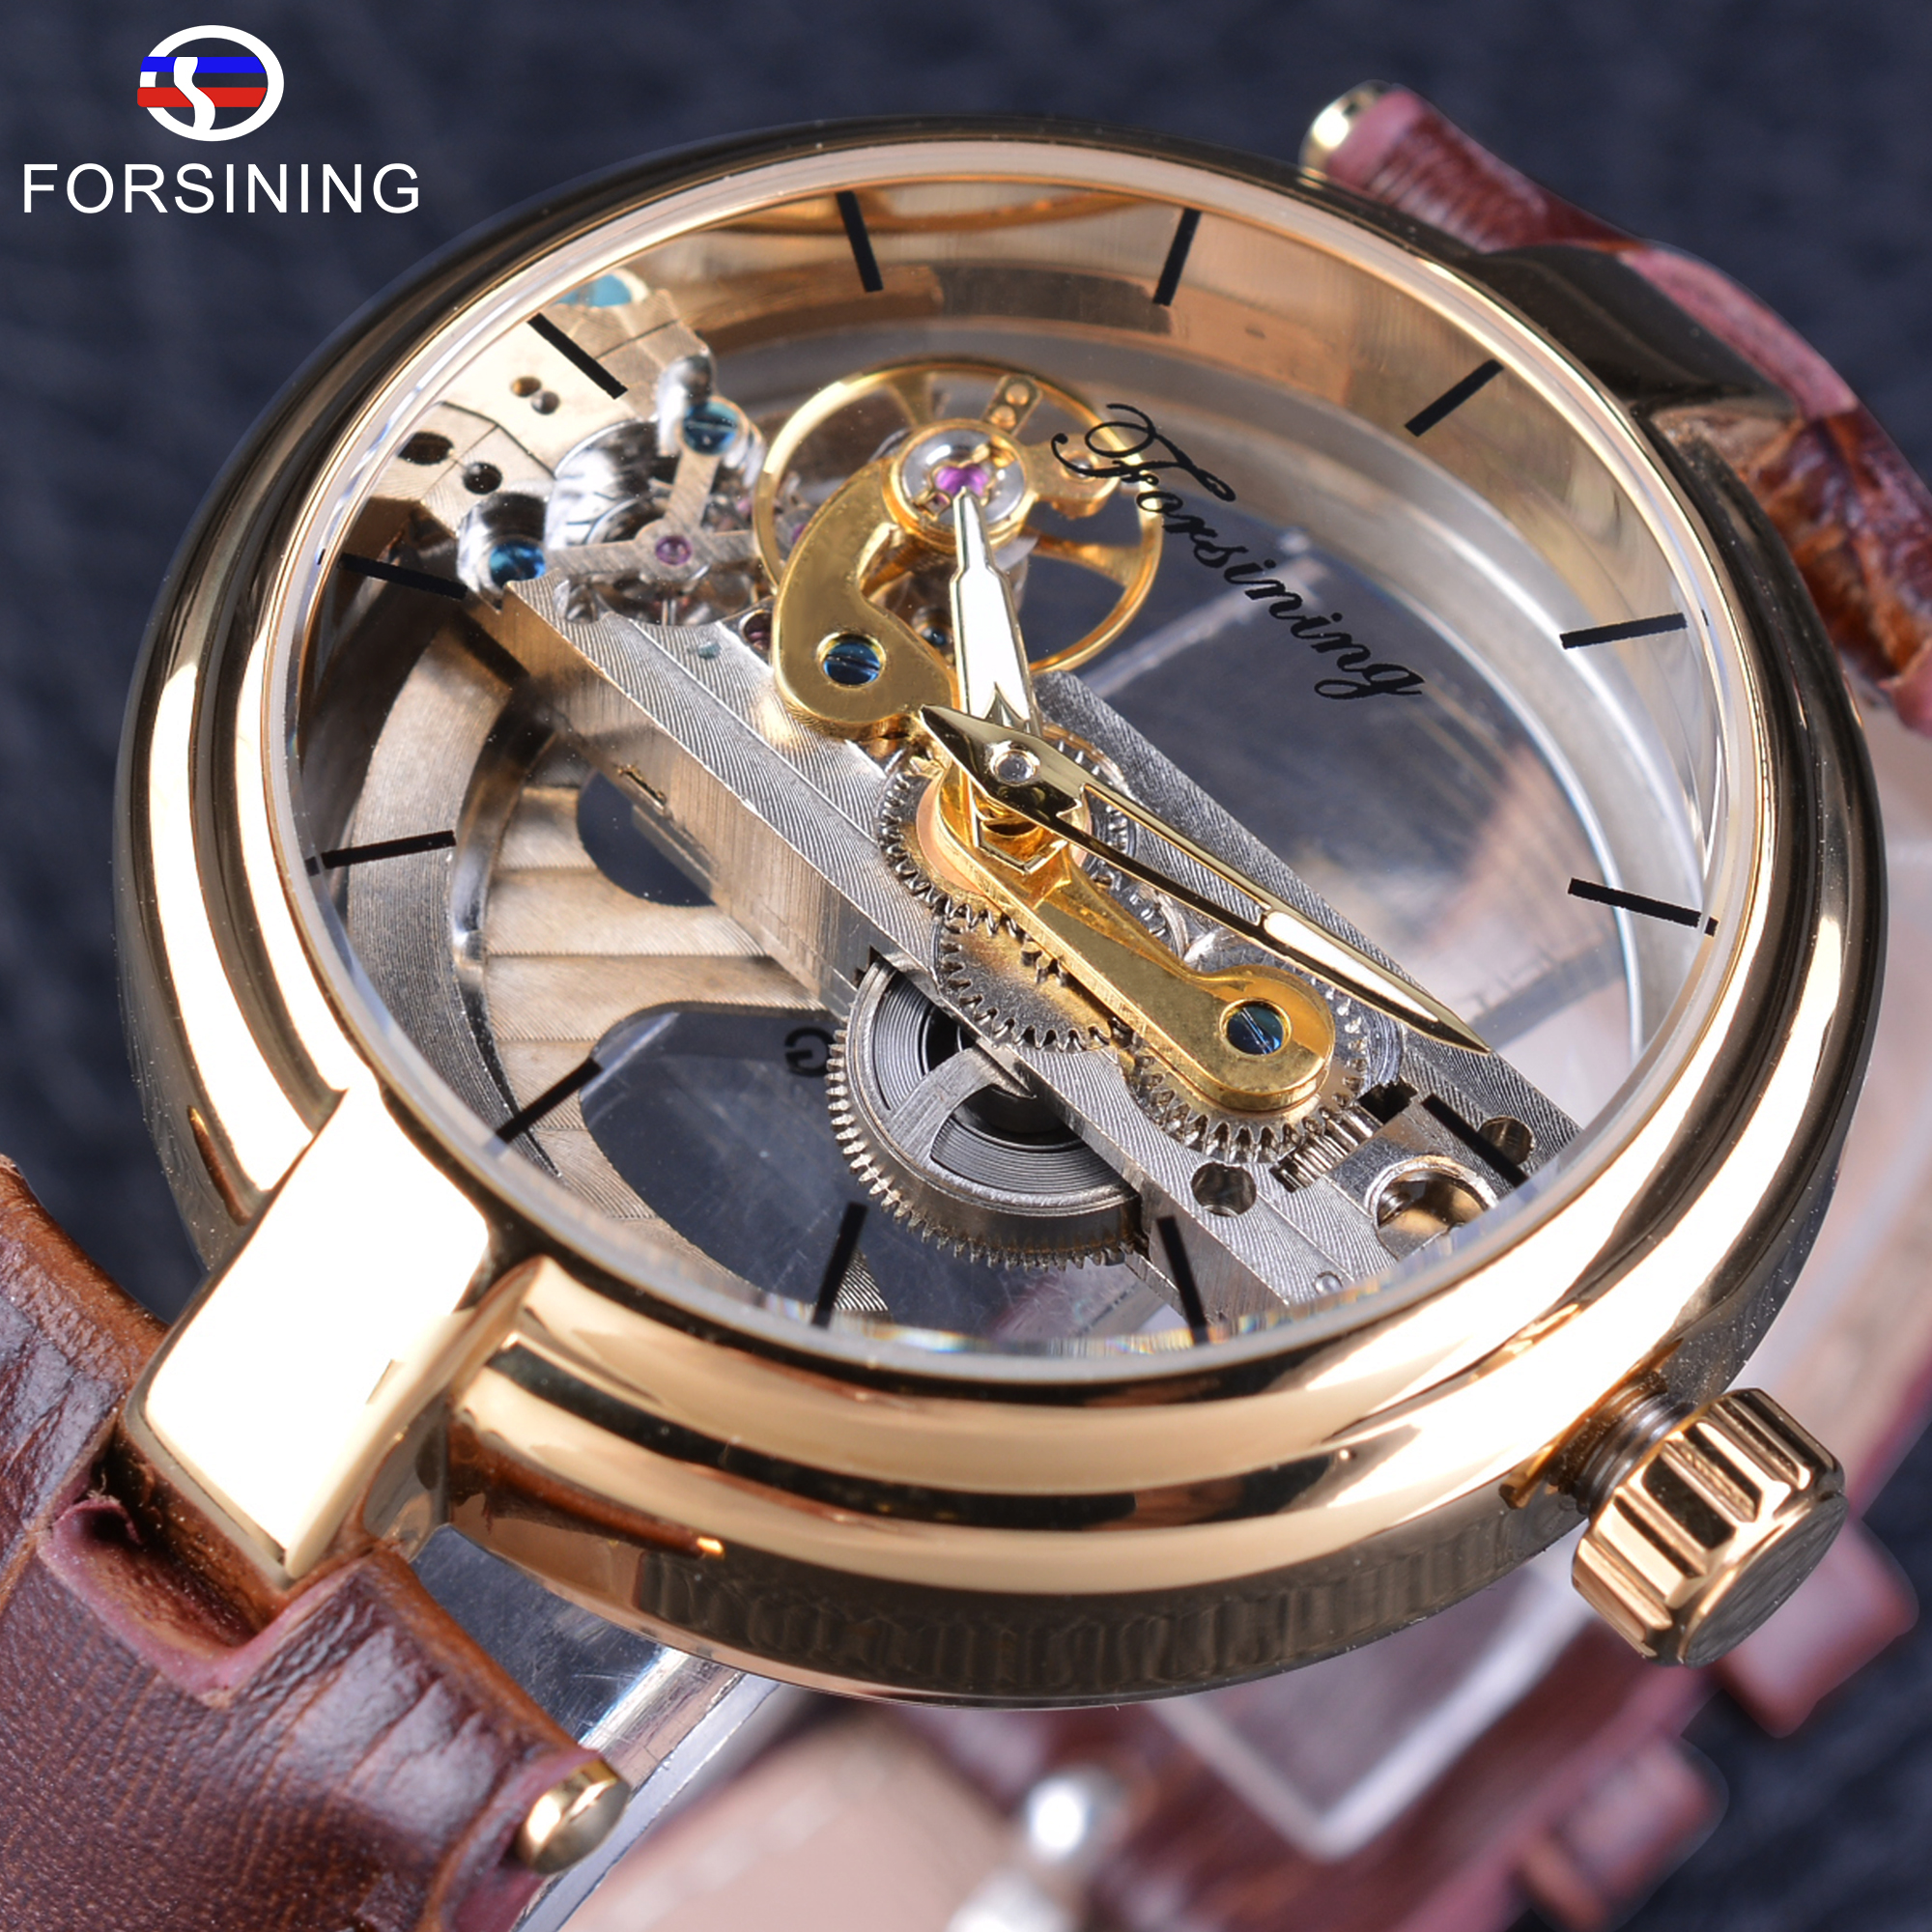 Forsining Men's Mechanical Wristwatch Brown Genuine Leather Strap Automatic Self-wind Sport Watch Steampunk Waterproof Design forsining latest design men s tourbillon automatic self wind black genuine leather strap classic wristwatch fs057m3g4 gift box